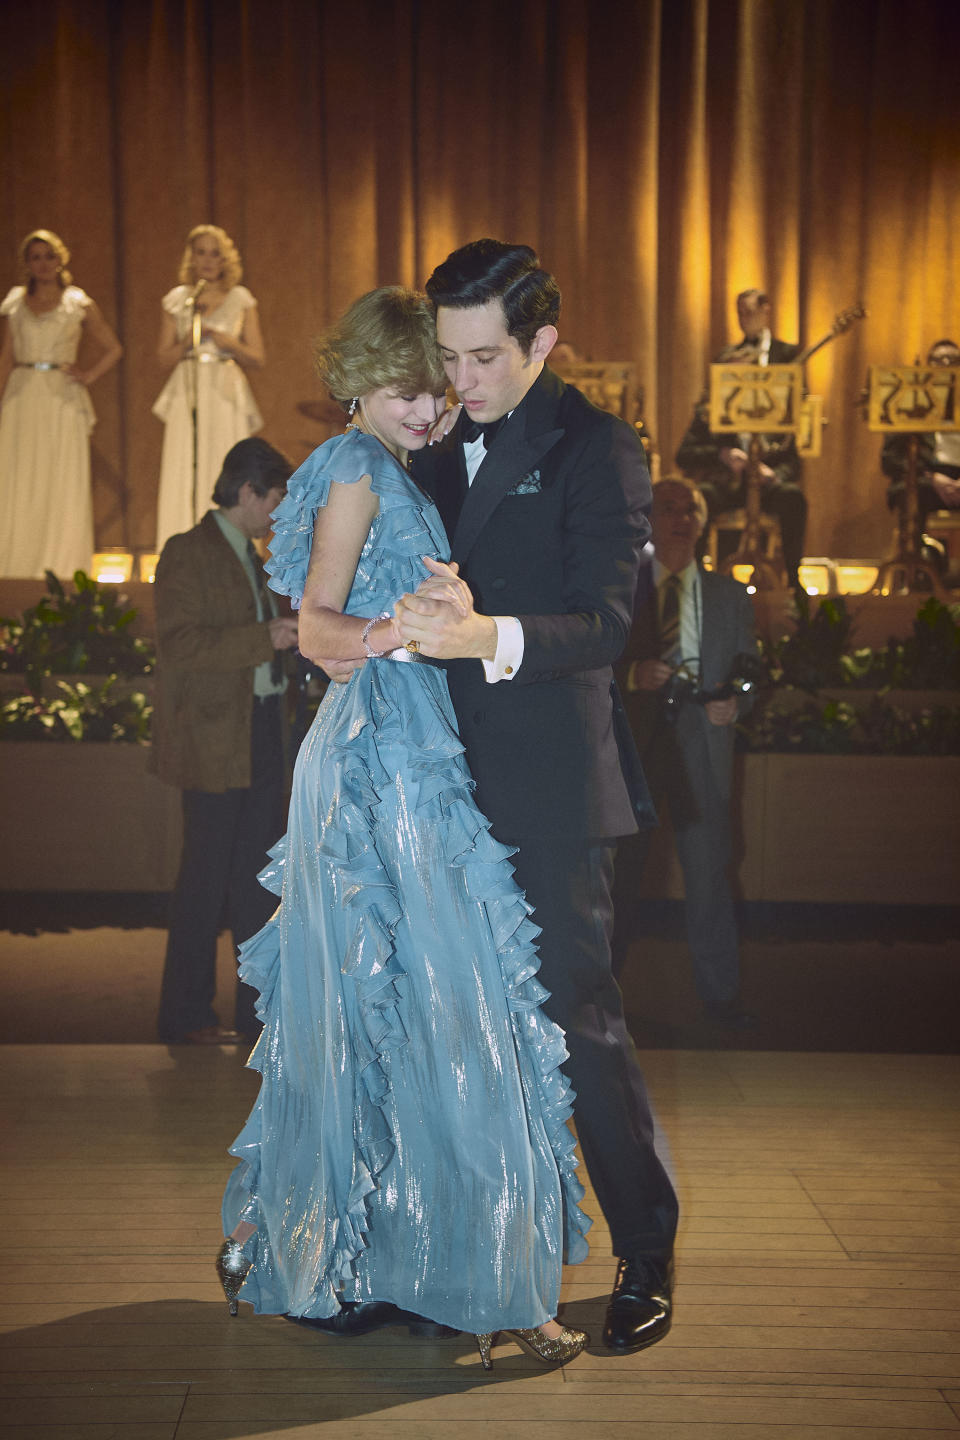 In a scene from The crown season four Princess Diana (Emma Corrin) and Prince Charles (Josh O'Connor) dance on their 1983 Australian tour